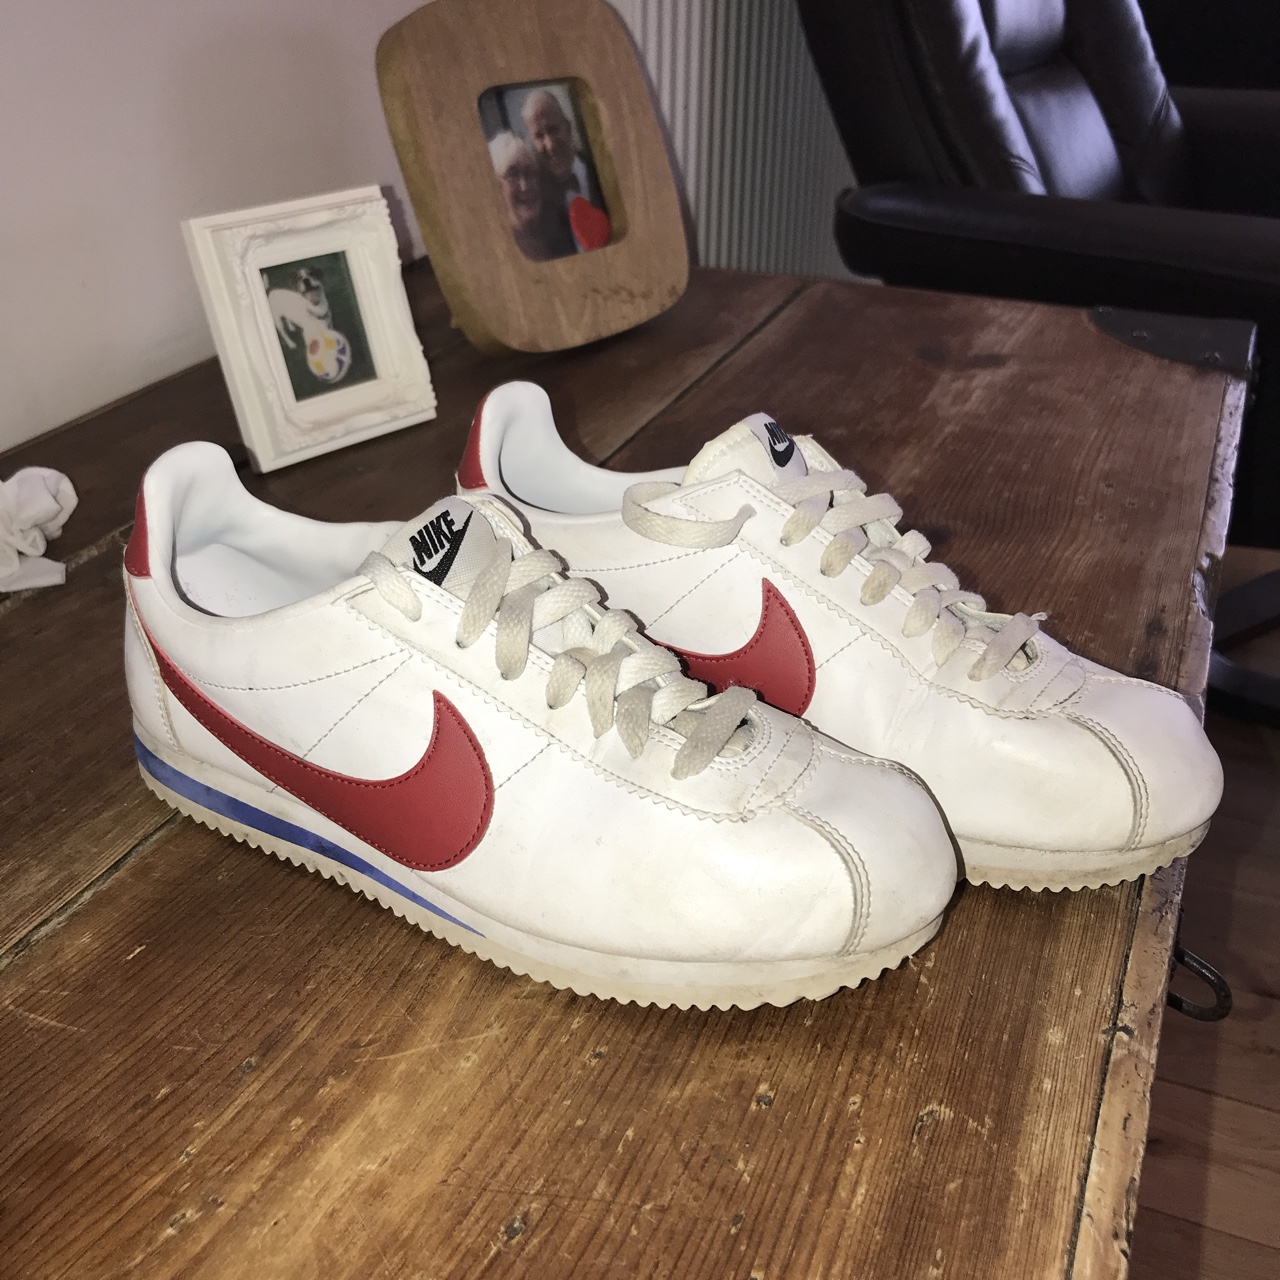 cheap for discount f0717 3a8e8 size 6 Nike Cortez Forrest Gump trainers in blue... - Depop